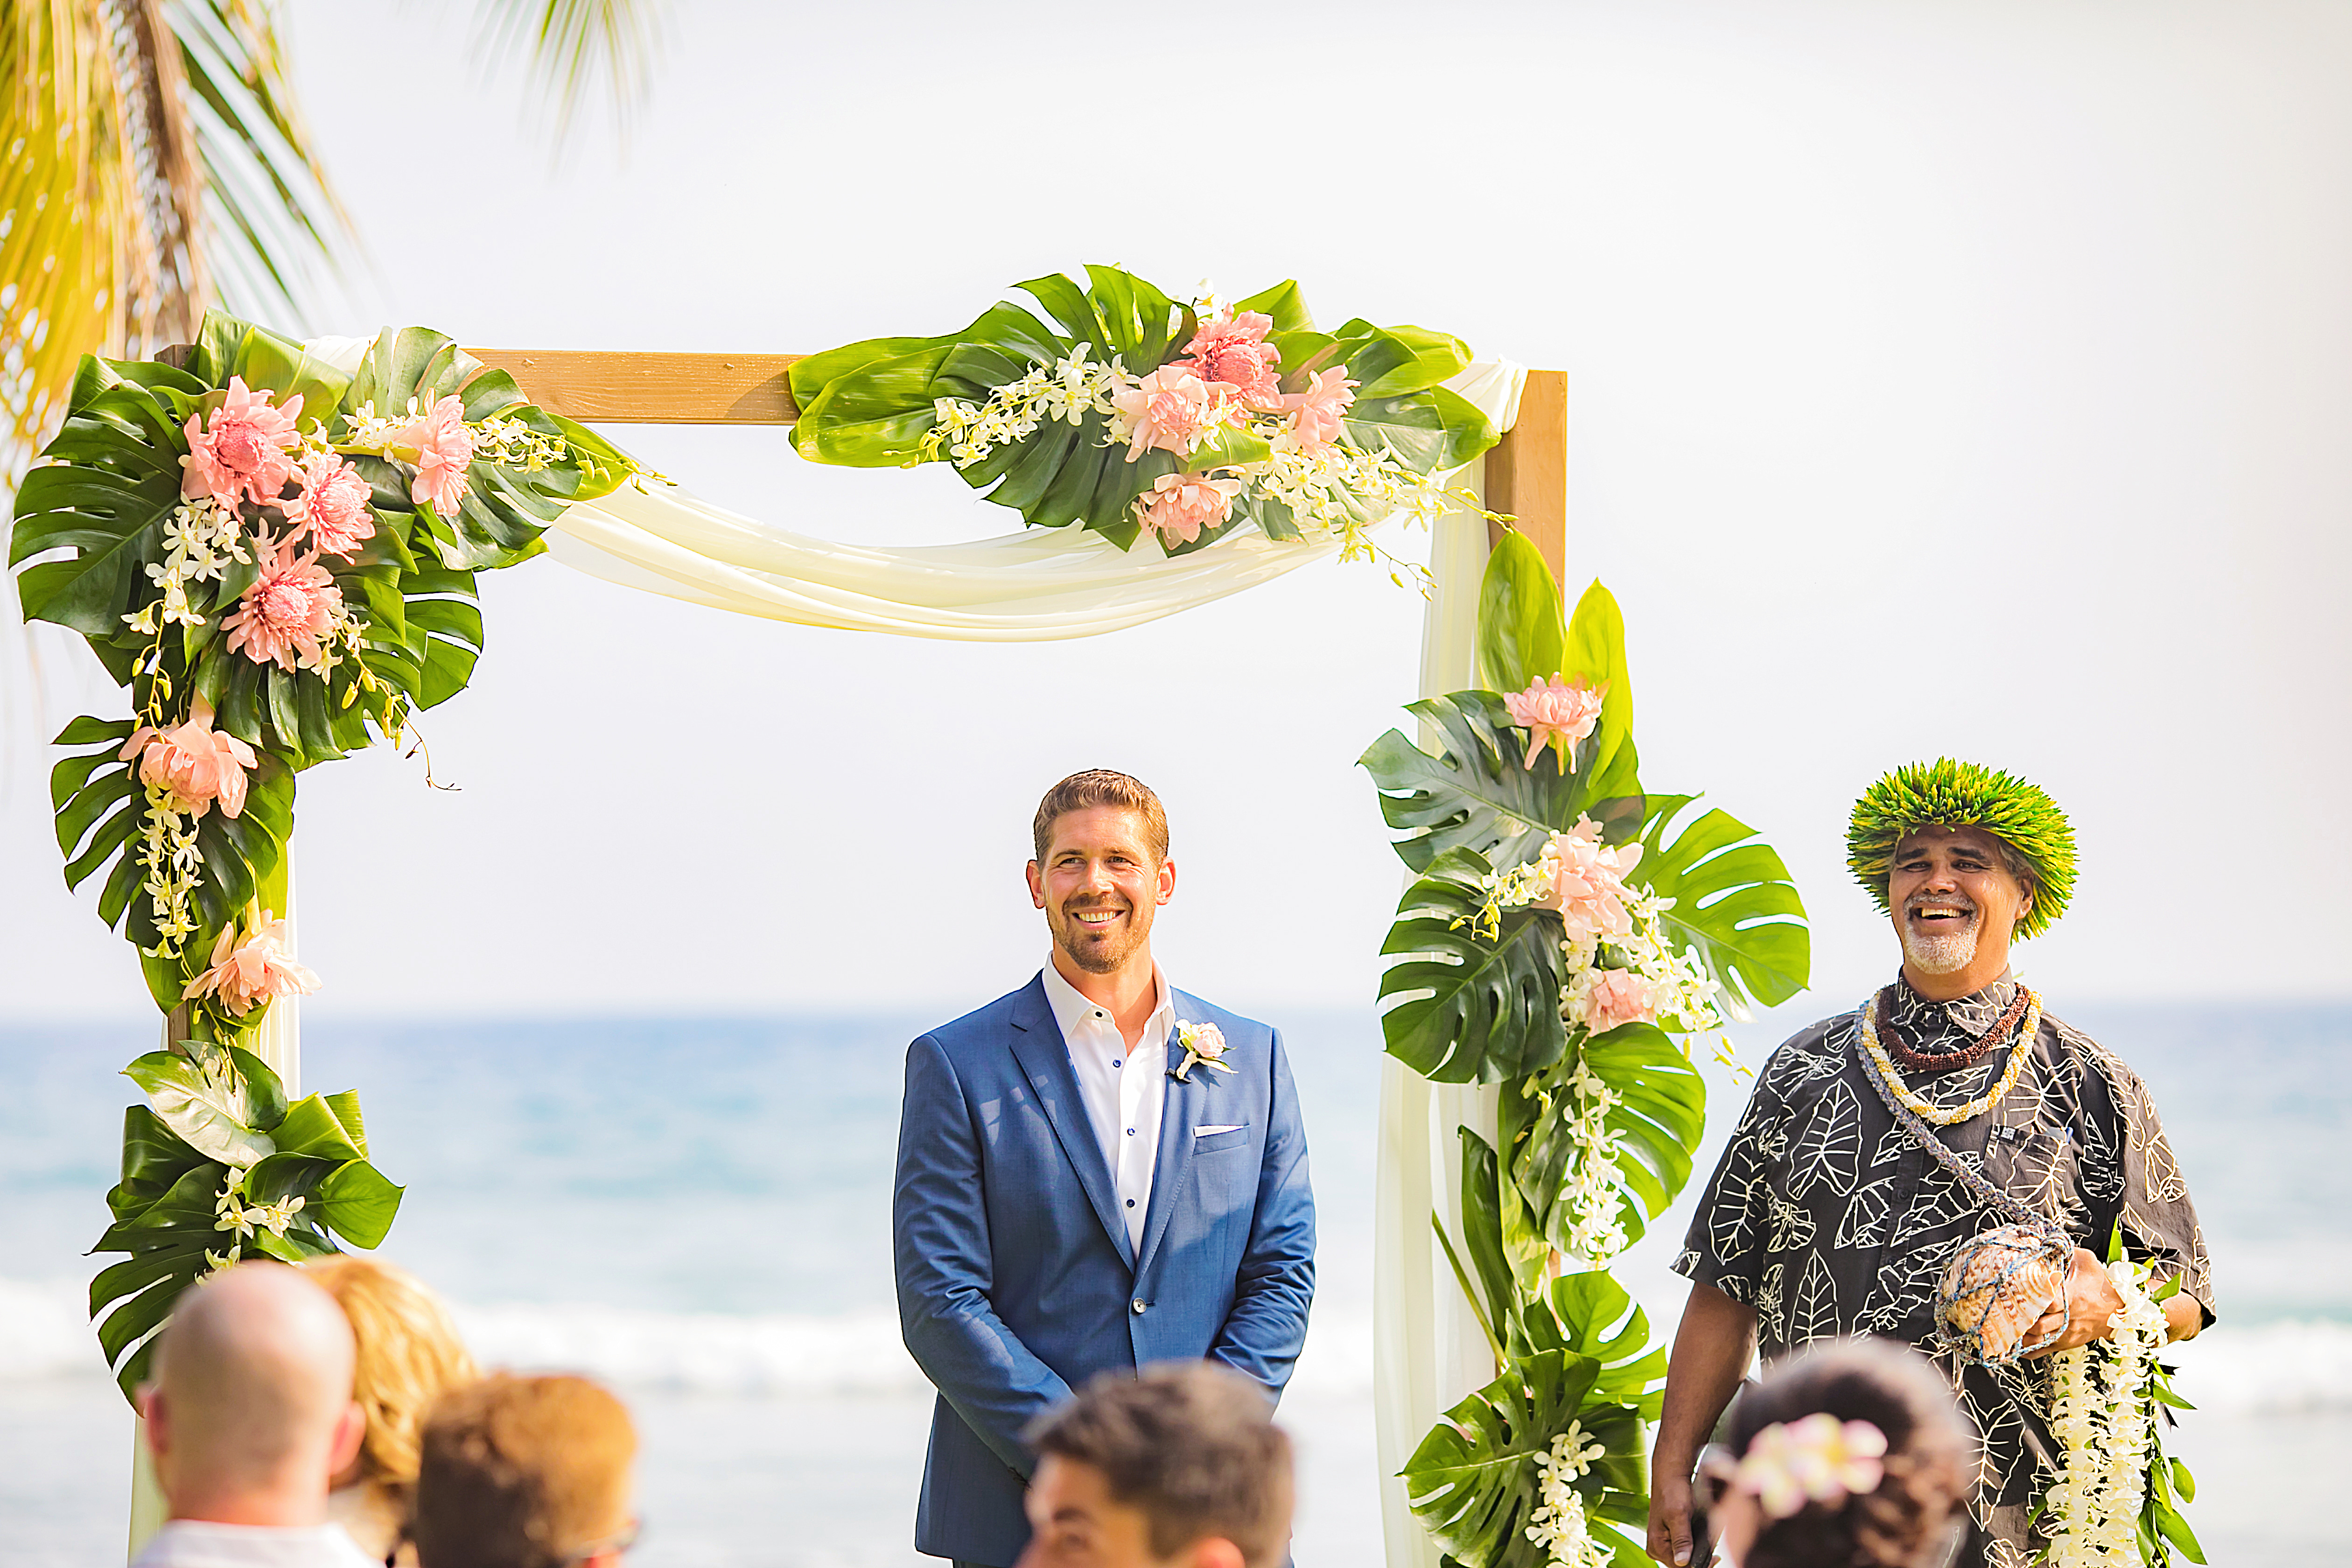 Maui Wedding Ceremony Arch | Destination Wedding in Maui | Maui Wedding Planner | Maui's Angels blog